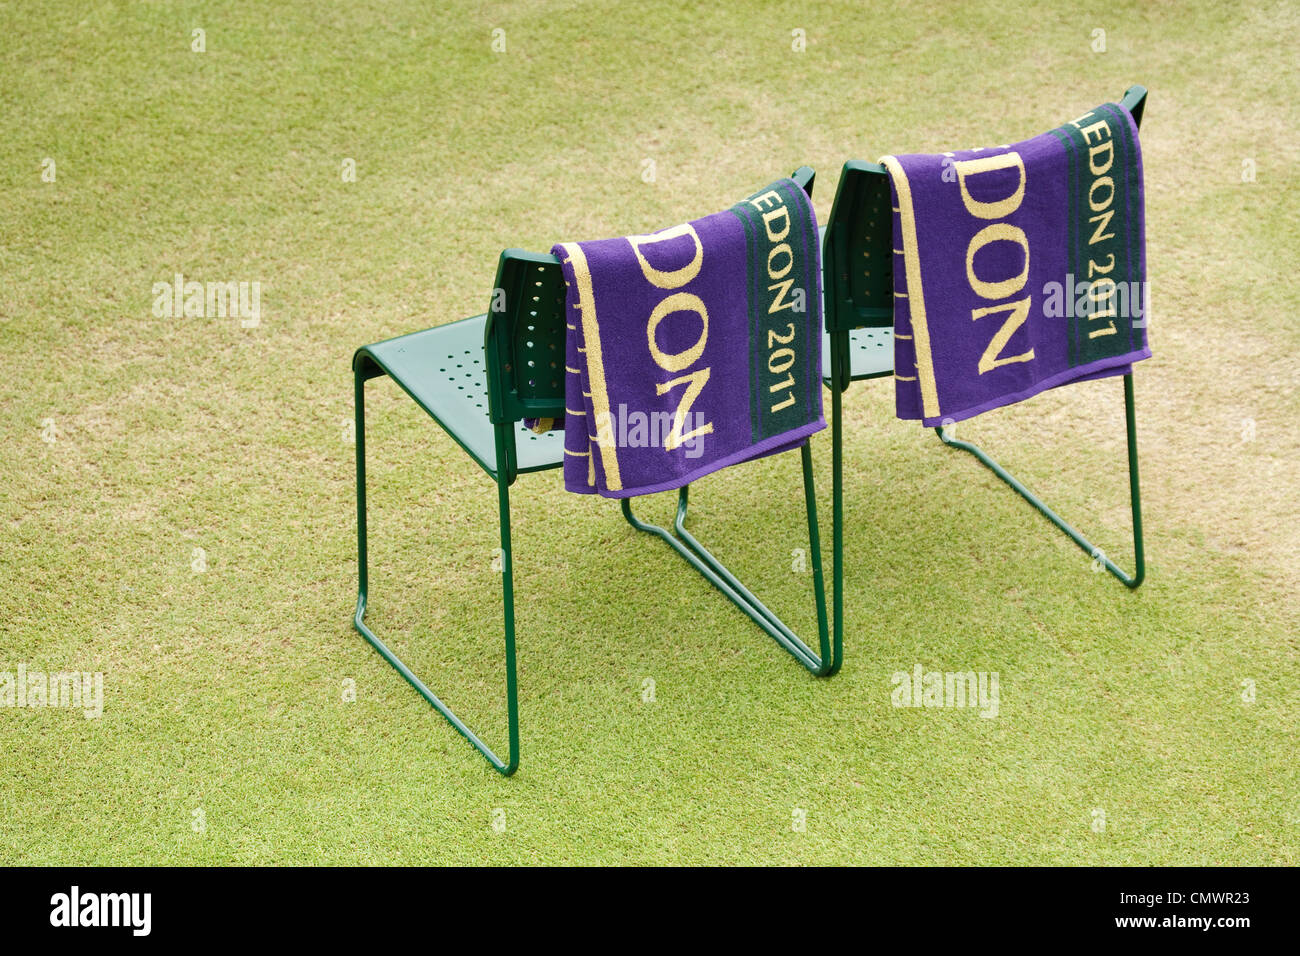 Exceptionnel Wimbledon Players Chairs Beside A Tennis Court At Wimbledon Tennis Club,  England   Stock Image